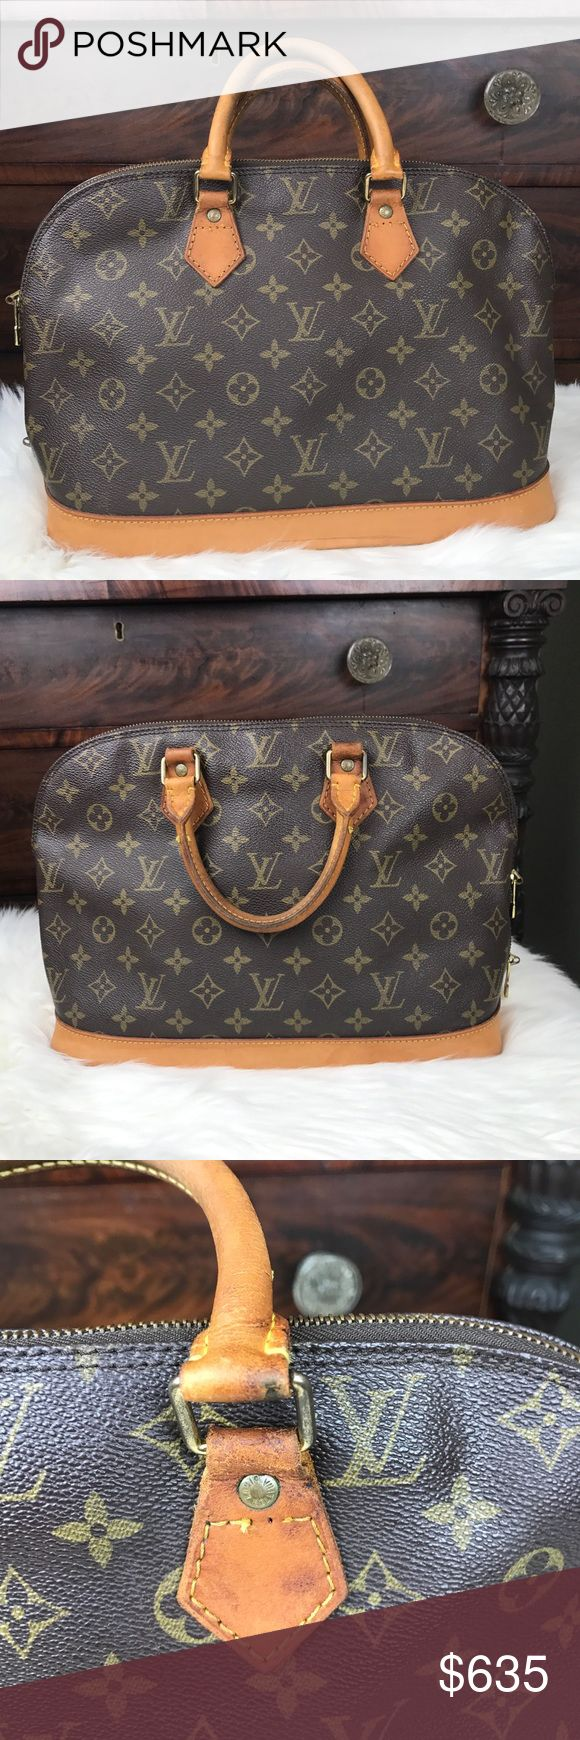 """Authentic Louis Vuitton Alma Date Code VI 1922 Size (Inch)W 12.6 × H 9.3 × D 6.3 """"  Handle 3.5"""" There are signs of wear as this is a vintage bag. It is very clean inside and out. No tears, rips, smells, or other damage. The leather has warms nicely. The handles are darkened. As you can see in the third pic, there is a stitch missing. It doesn't impact functionality. Louis Vuitton Bags Satchels"""